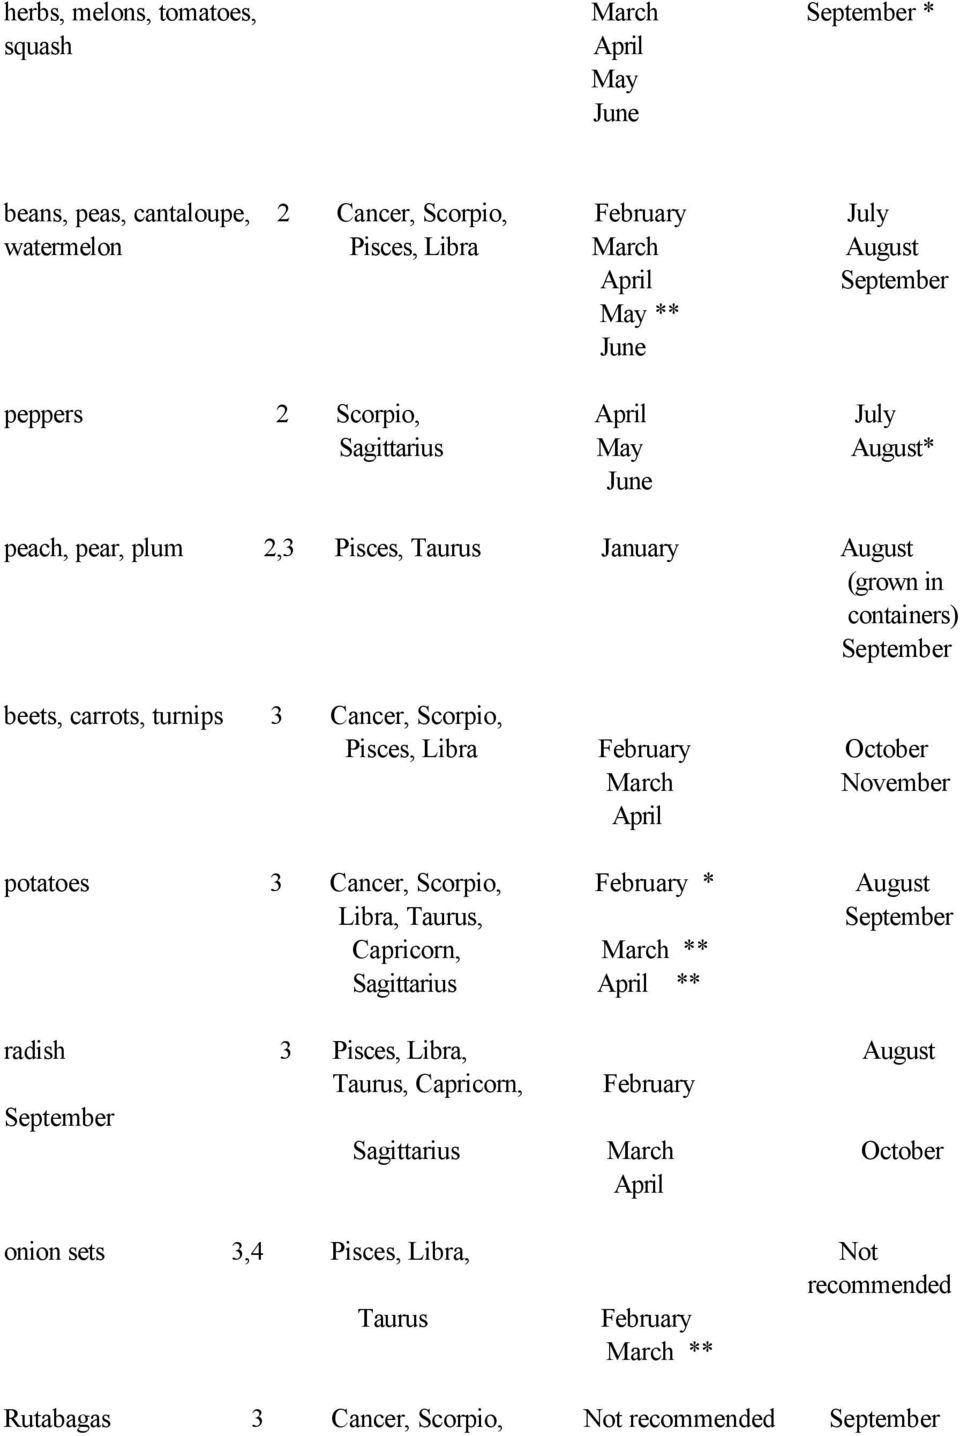 Scorpio, Pisces, Libra October November potatoes 3 Cancer, Scorpio, * August Libra, Taurus, September Capricorn, ** Sagittarius ** radish 3 Pisces, Libra,